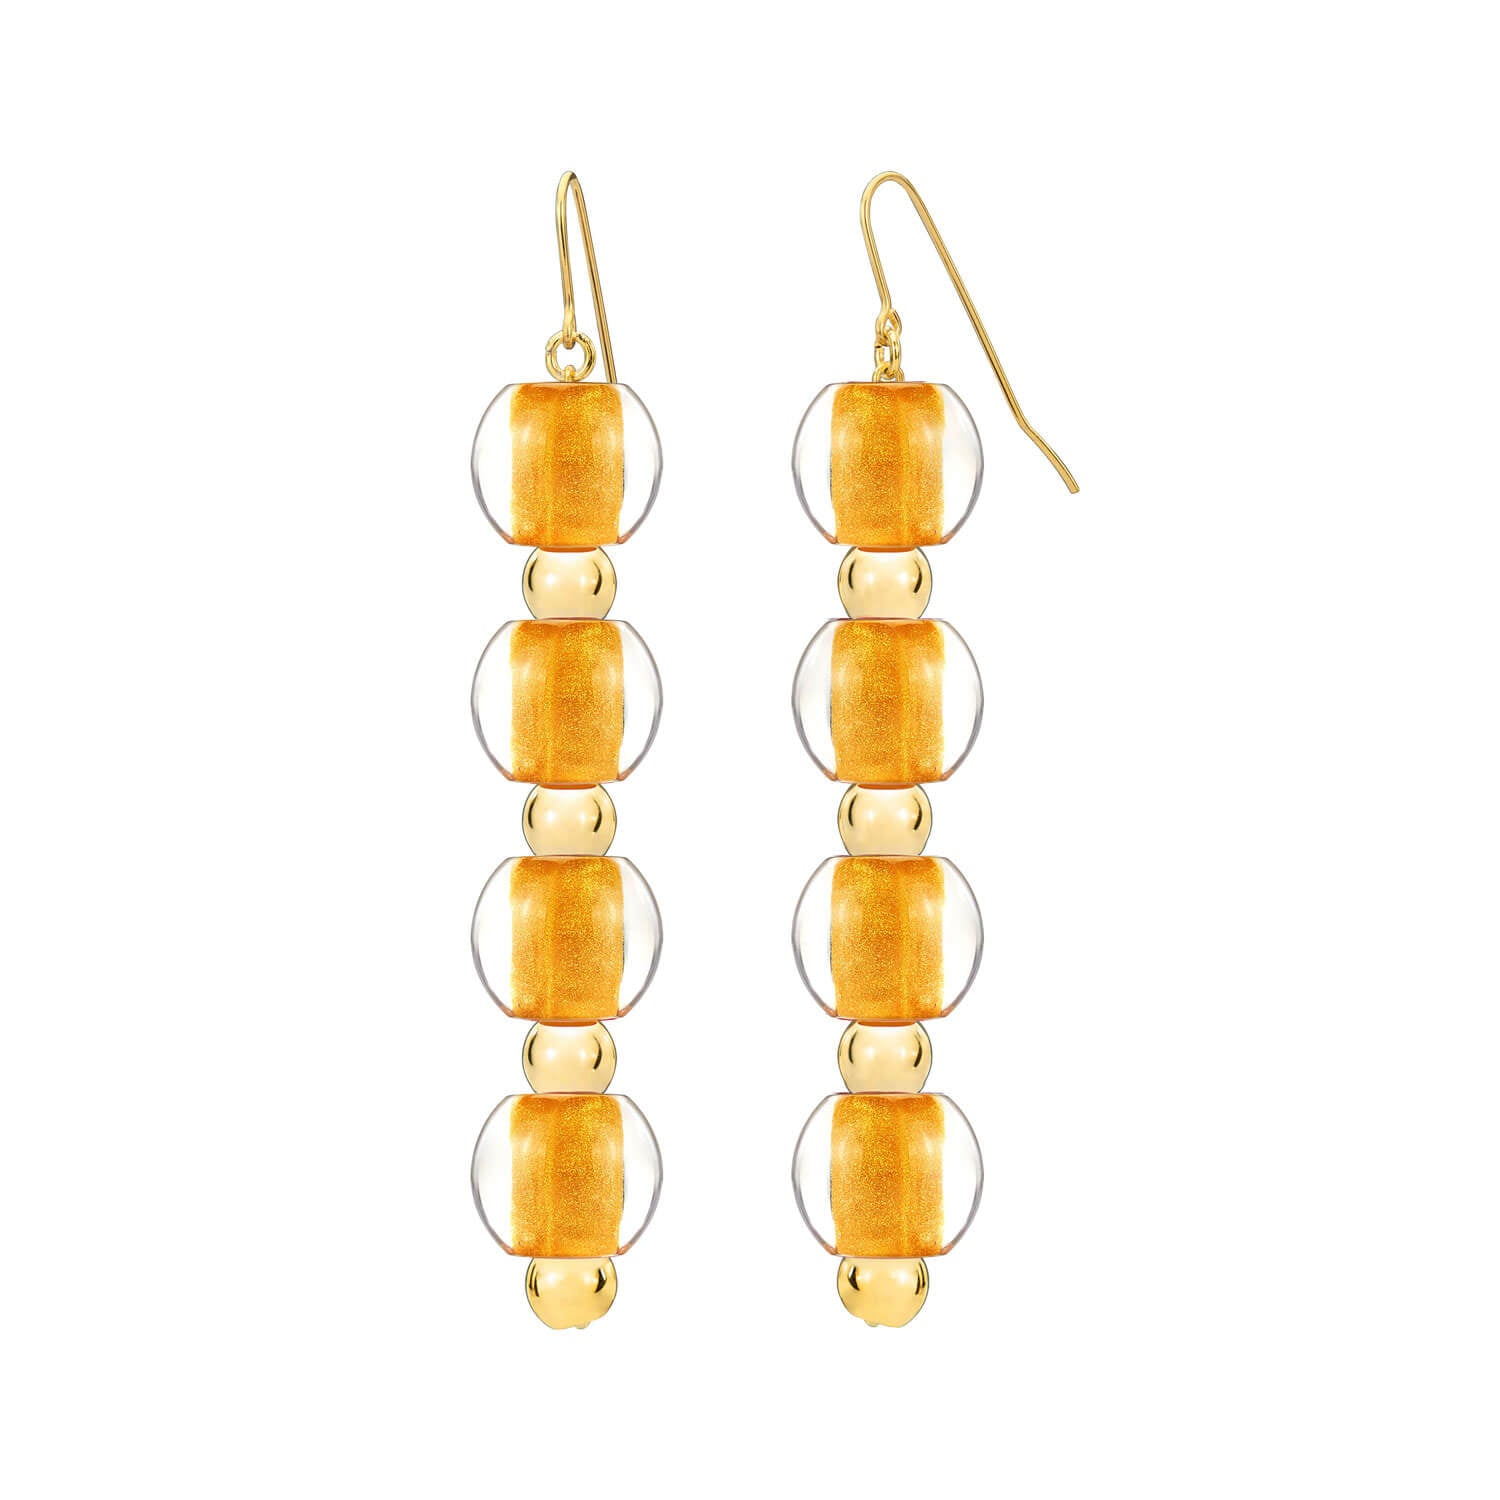 4 Drop Mini Bead Lucite Earrings - GOLDEN NUGGET